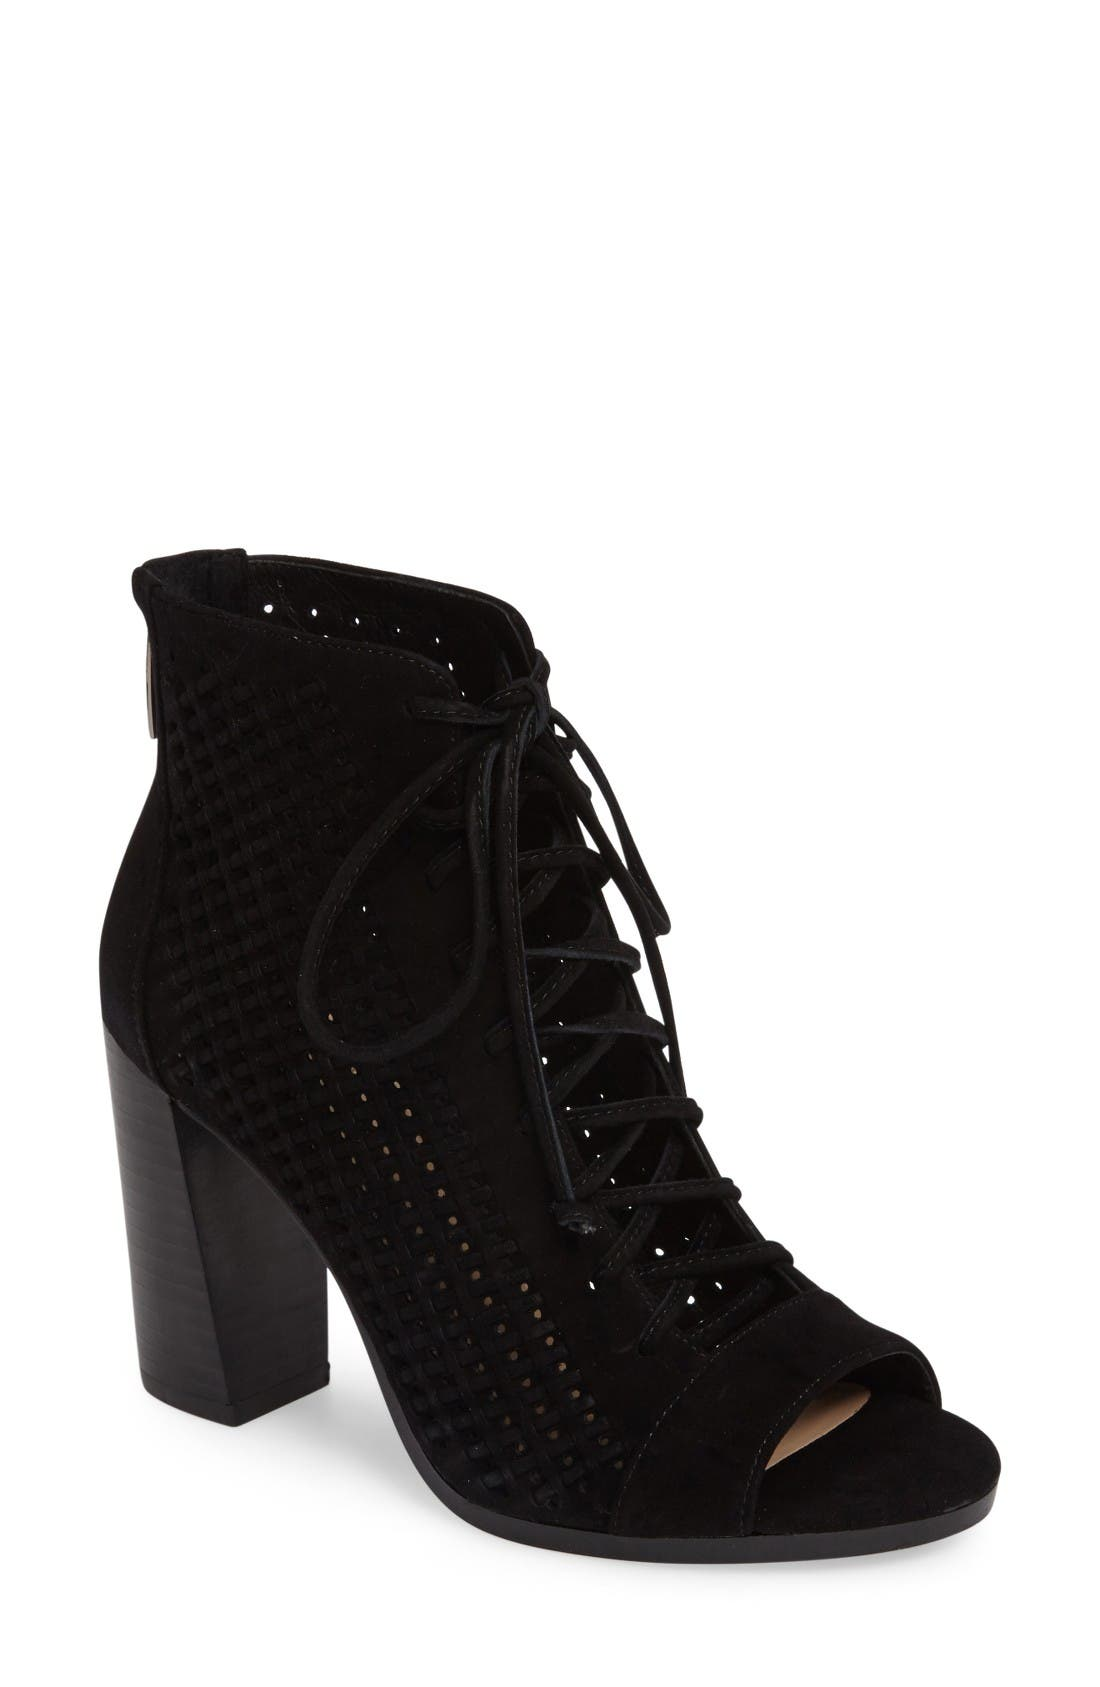 Main Image - Vince Camuto Kevina Lace-Up Open Toe Bootie (Women)